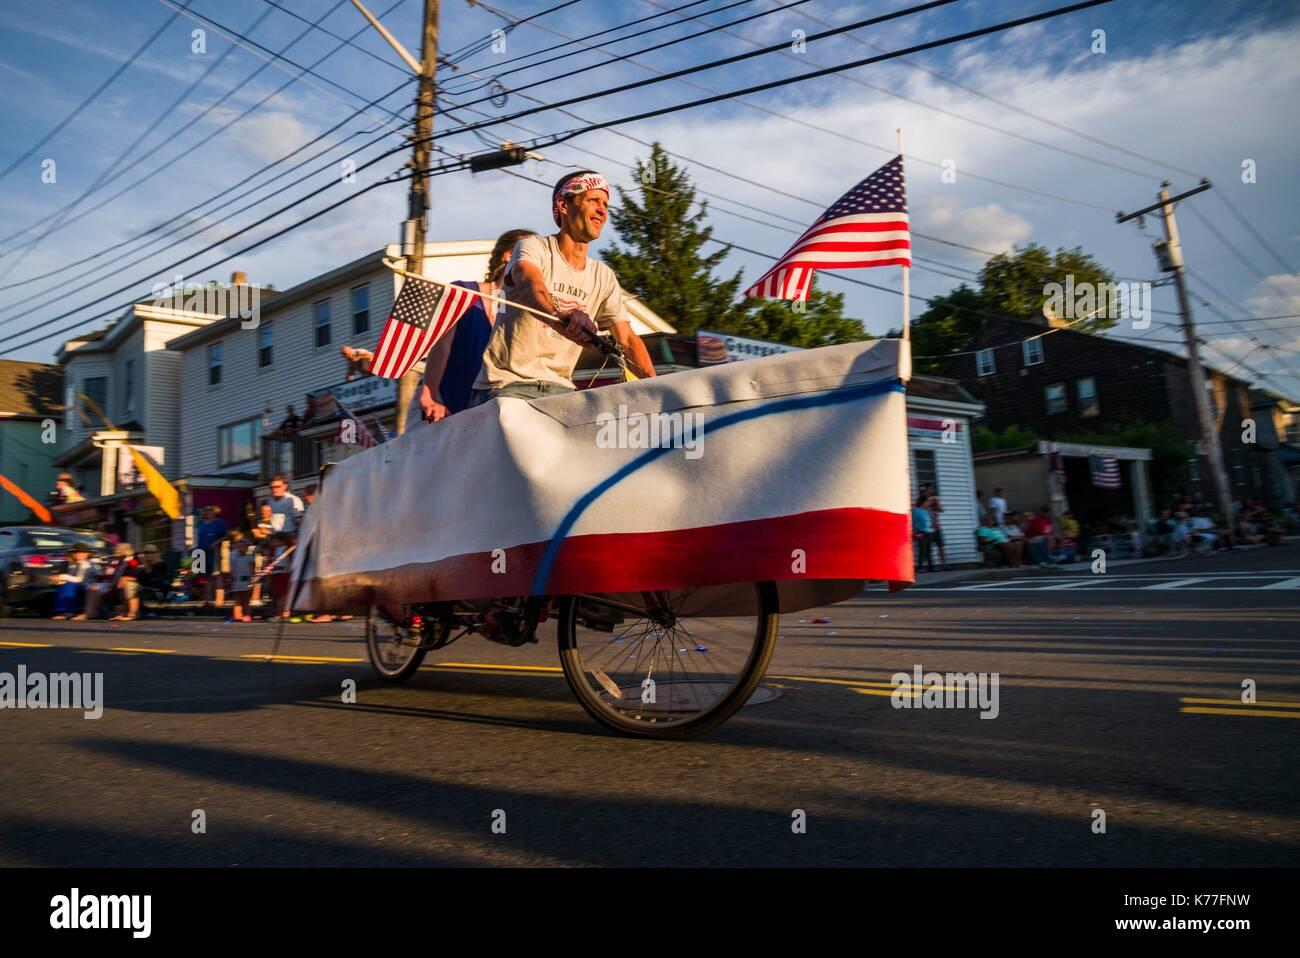 United States, Massachusetts, Cape Ann, Gloucester, Fourth of July Parade, boat-shaped bicycle Stock Photo